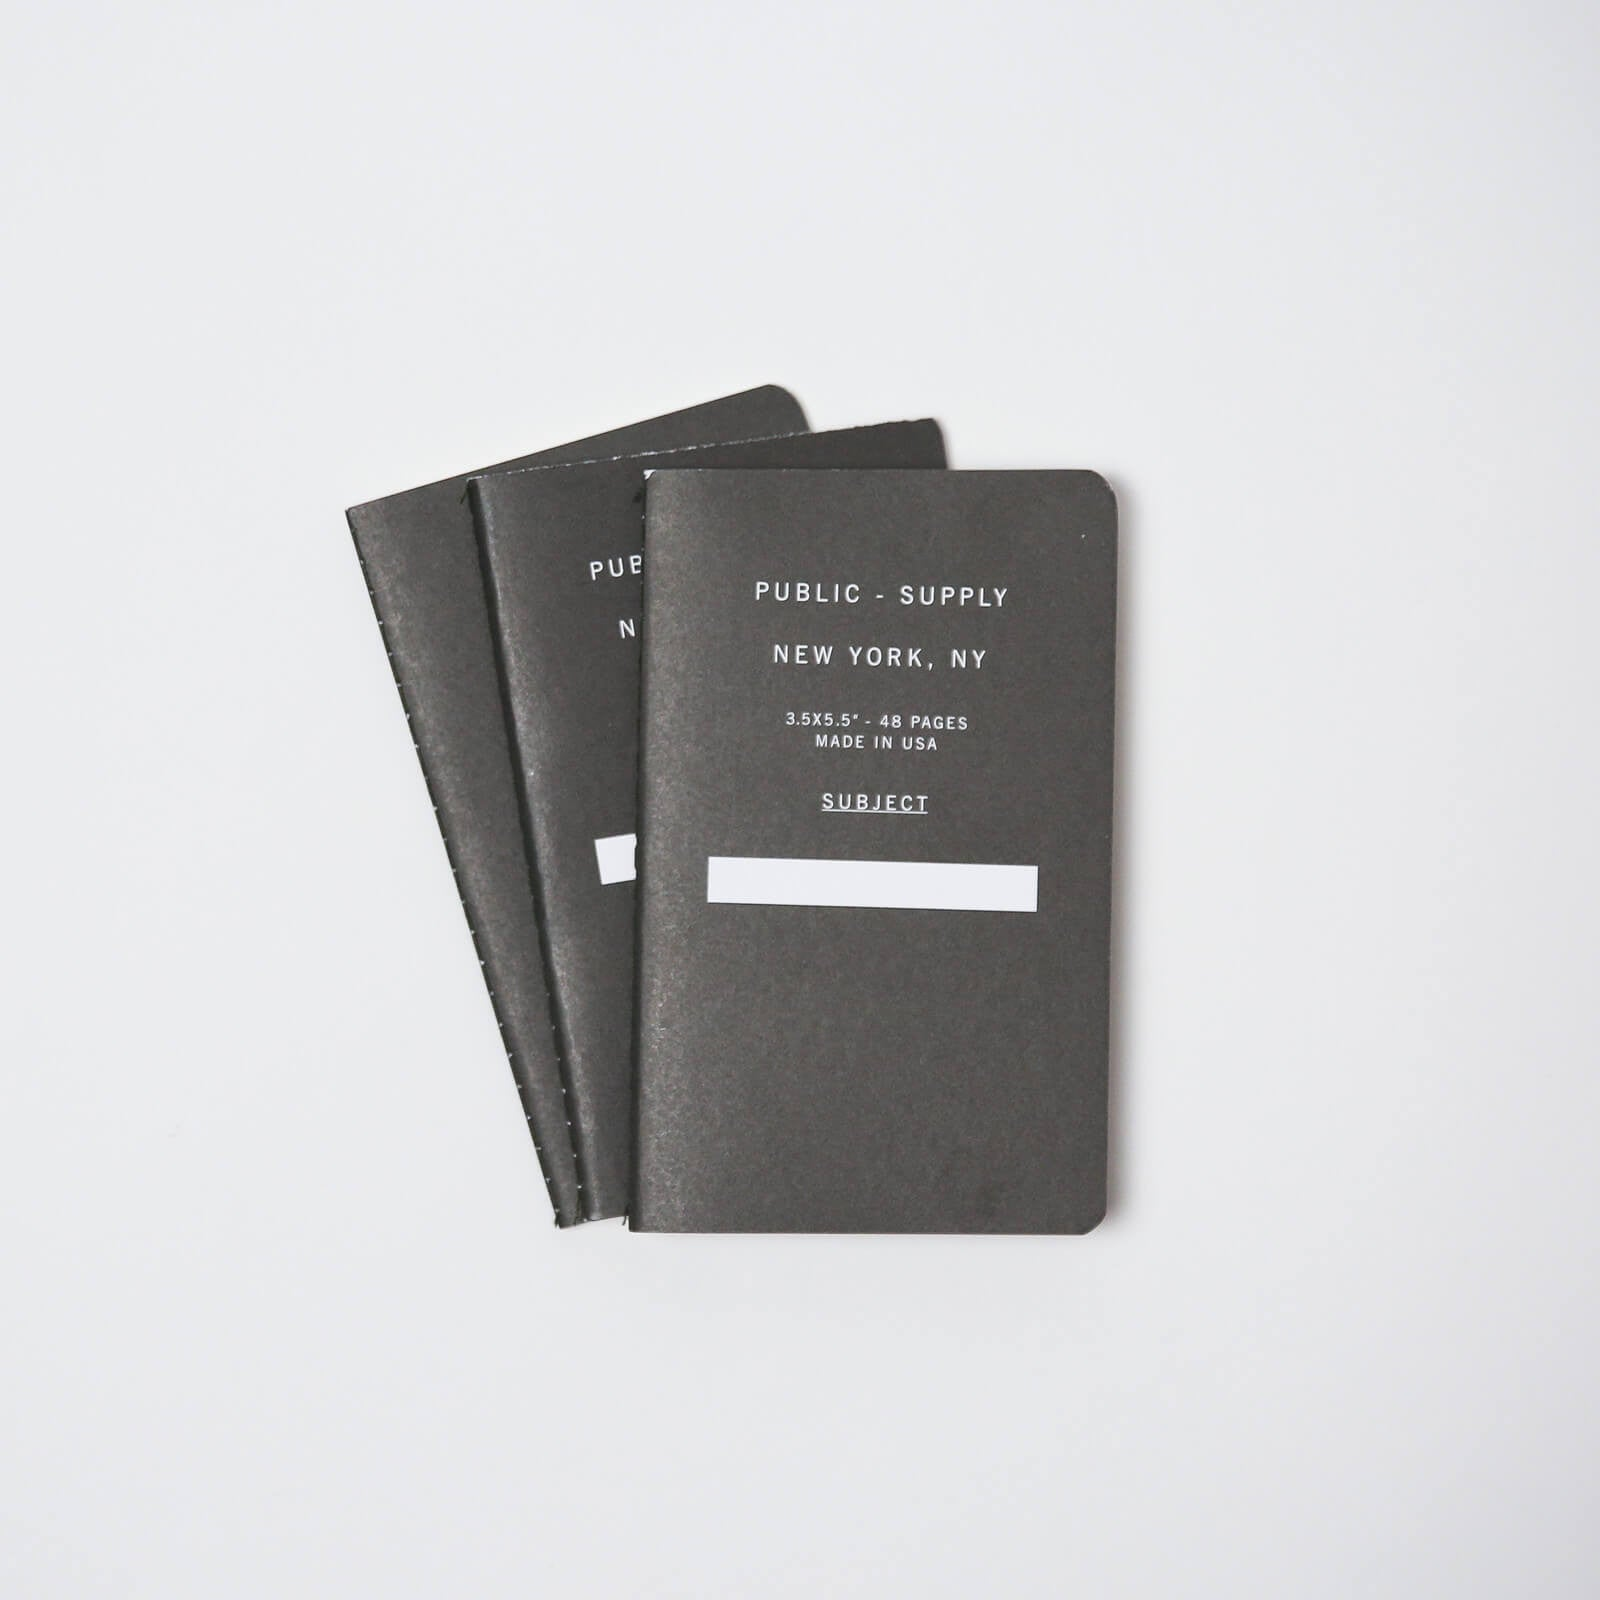 3.5 x 5.5 - 48 Pages Ruled - Black 01